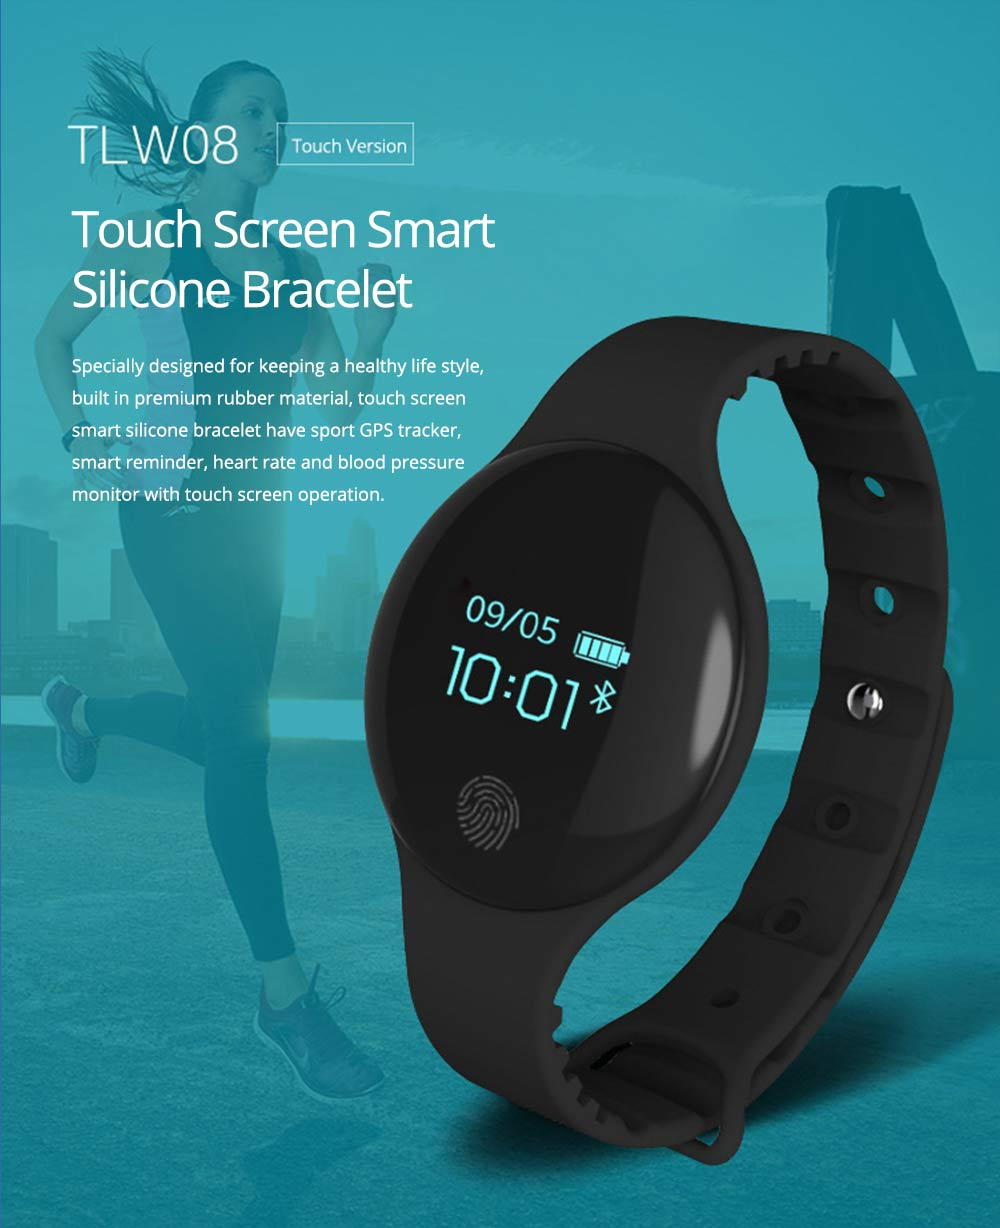 Sports Smart Watch Smart Silicone Bracelet with Touch Screen Bluetooth Pedometer for Children's Gift 0